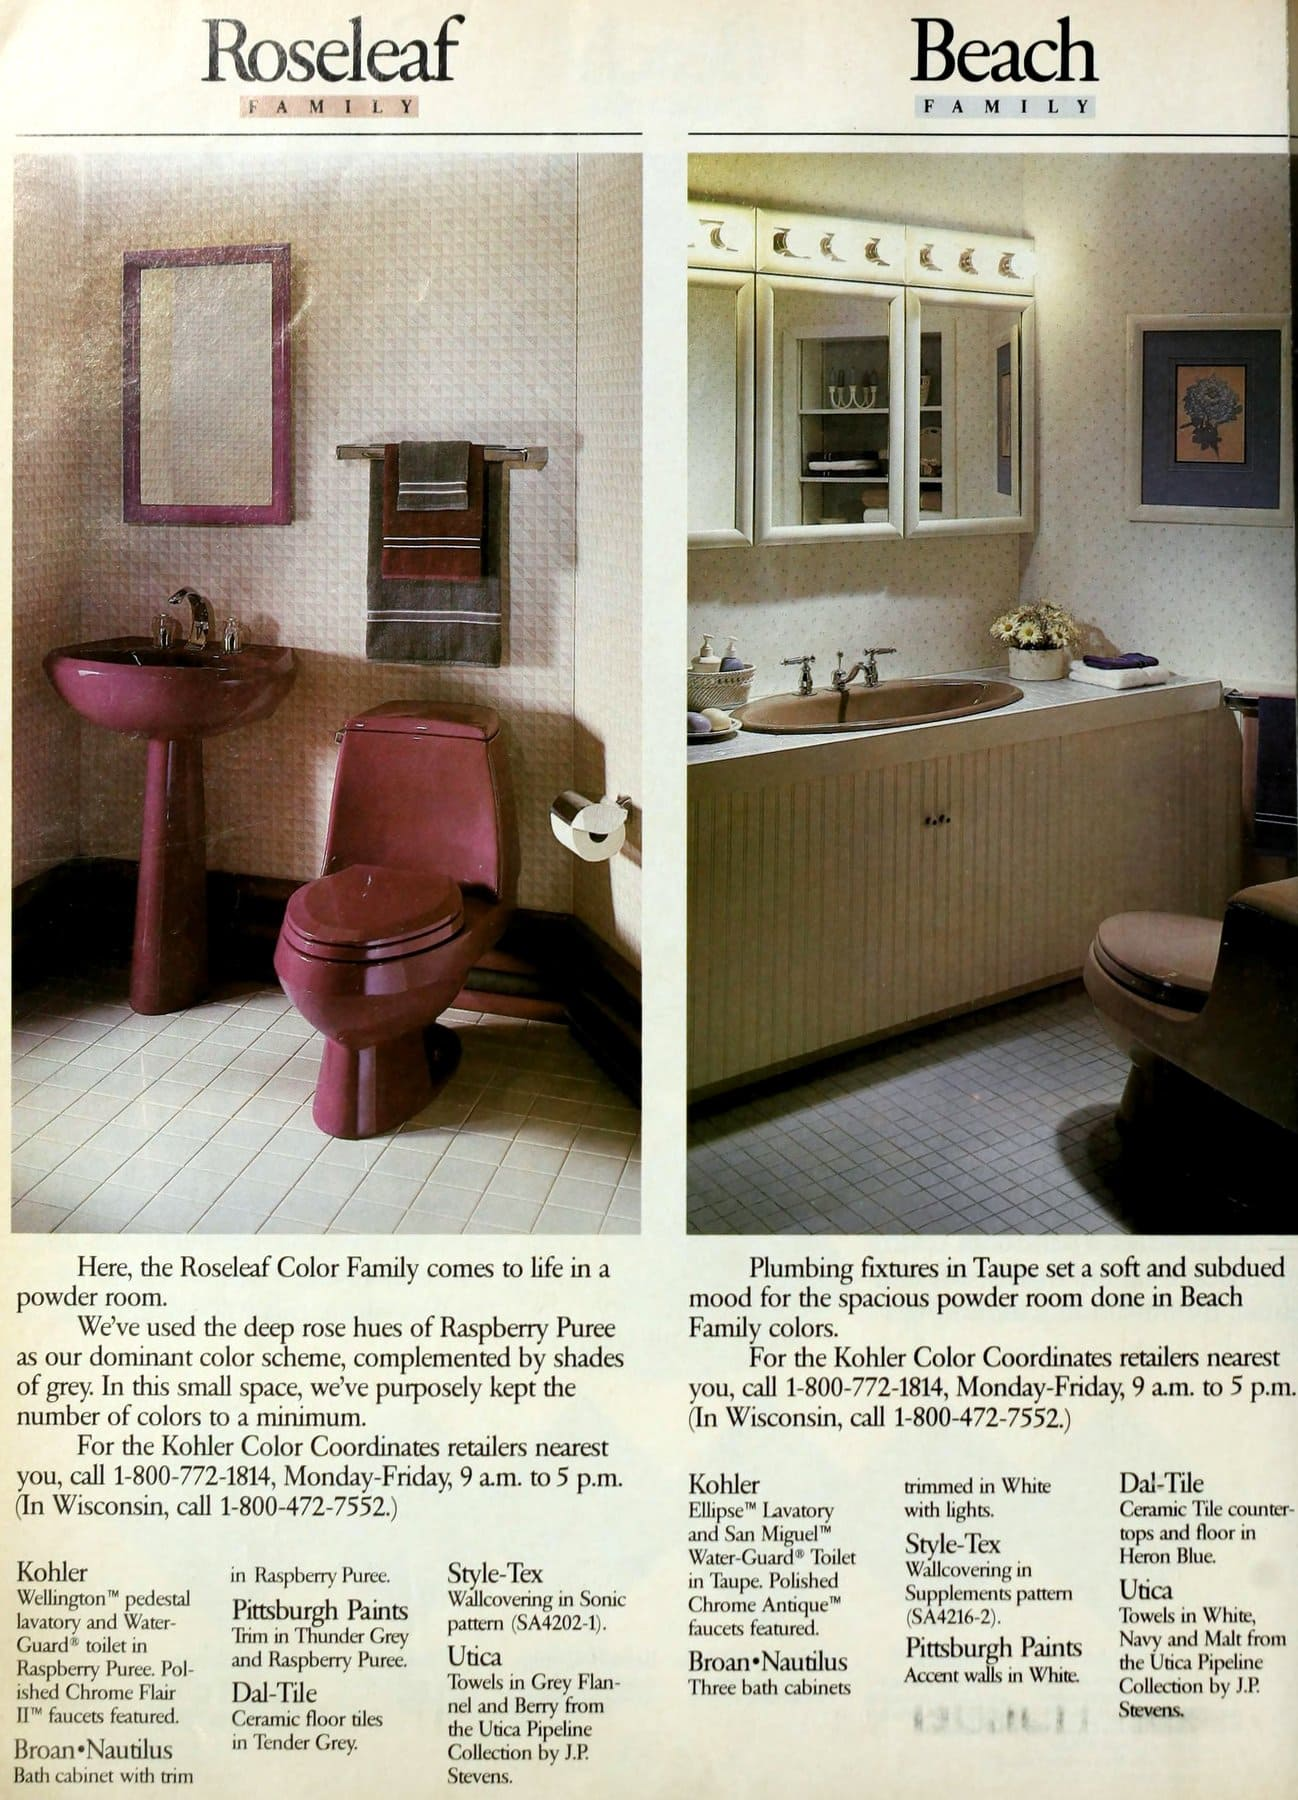 Roseleaf and Beach powder room decor from the eighties